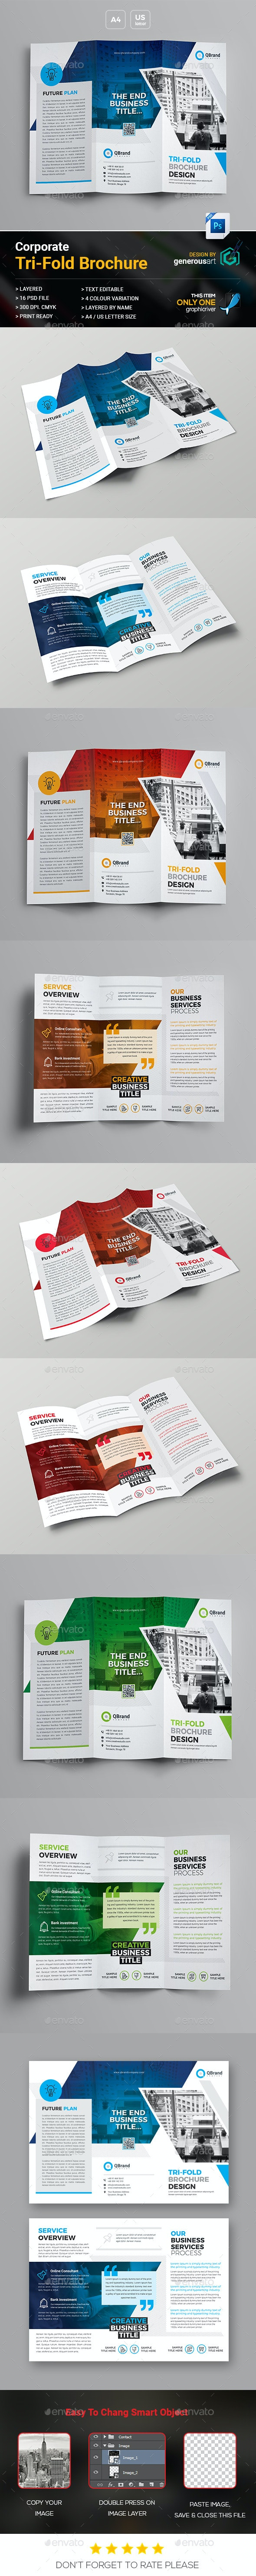 Company Tri-Fold Brochure - Corporate Brochures